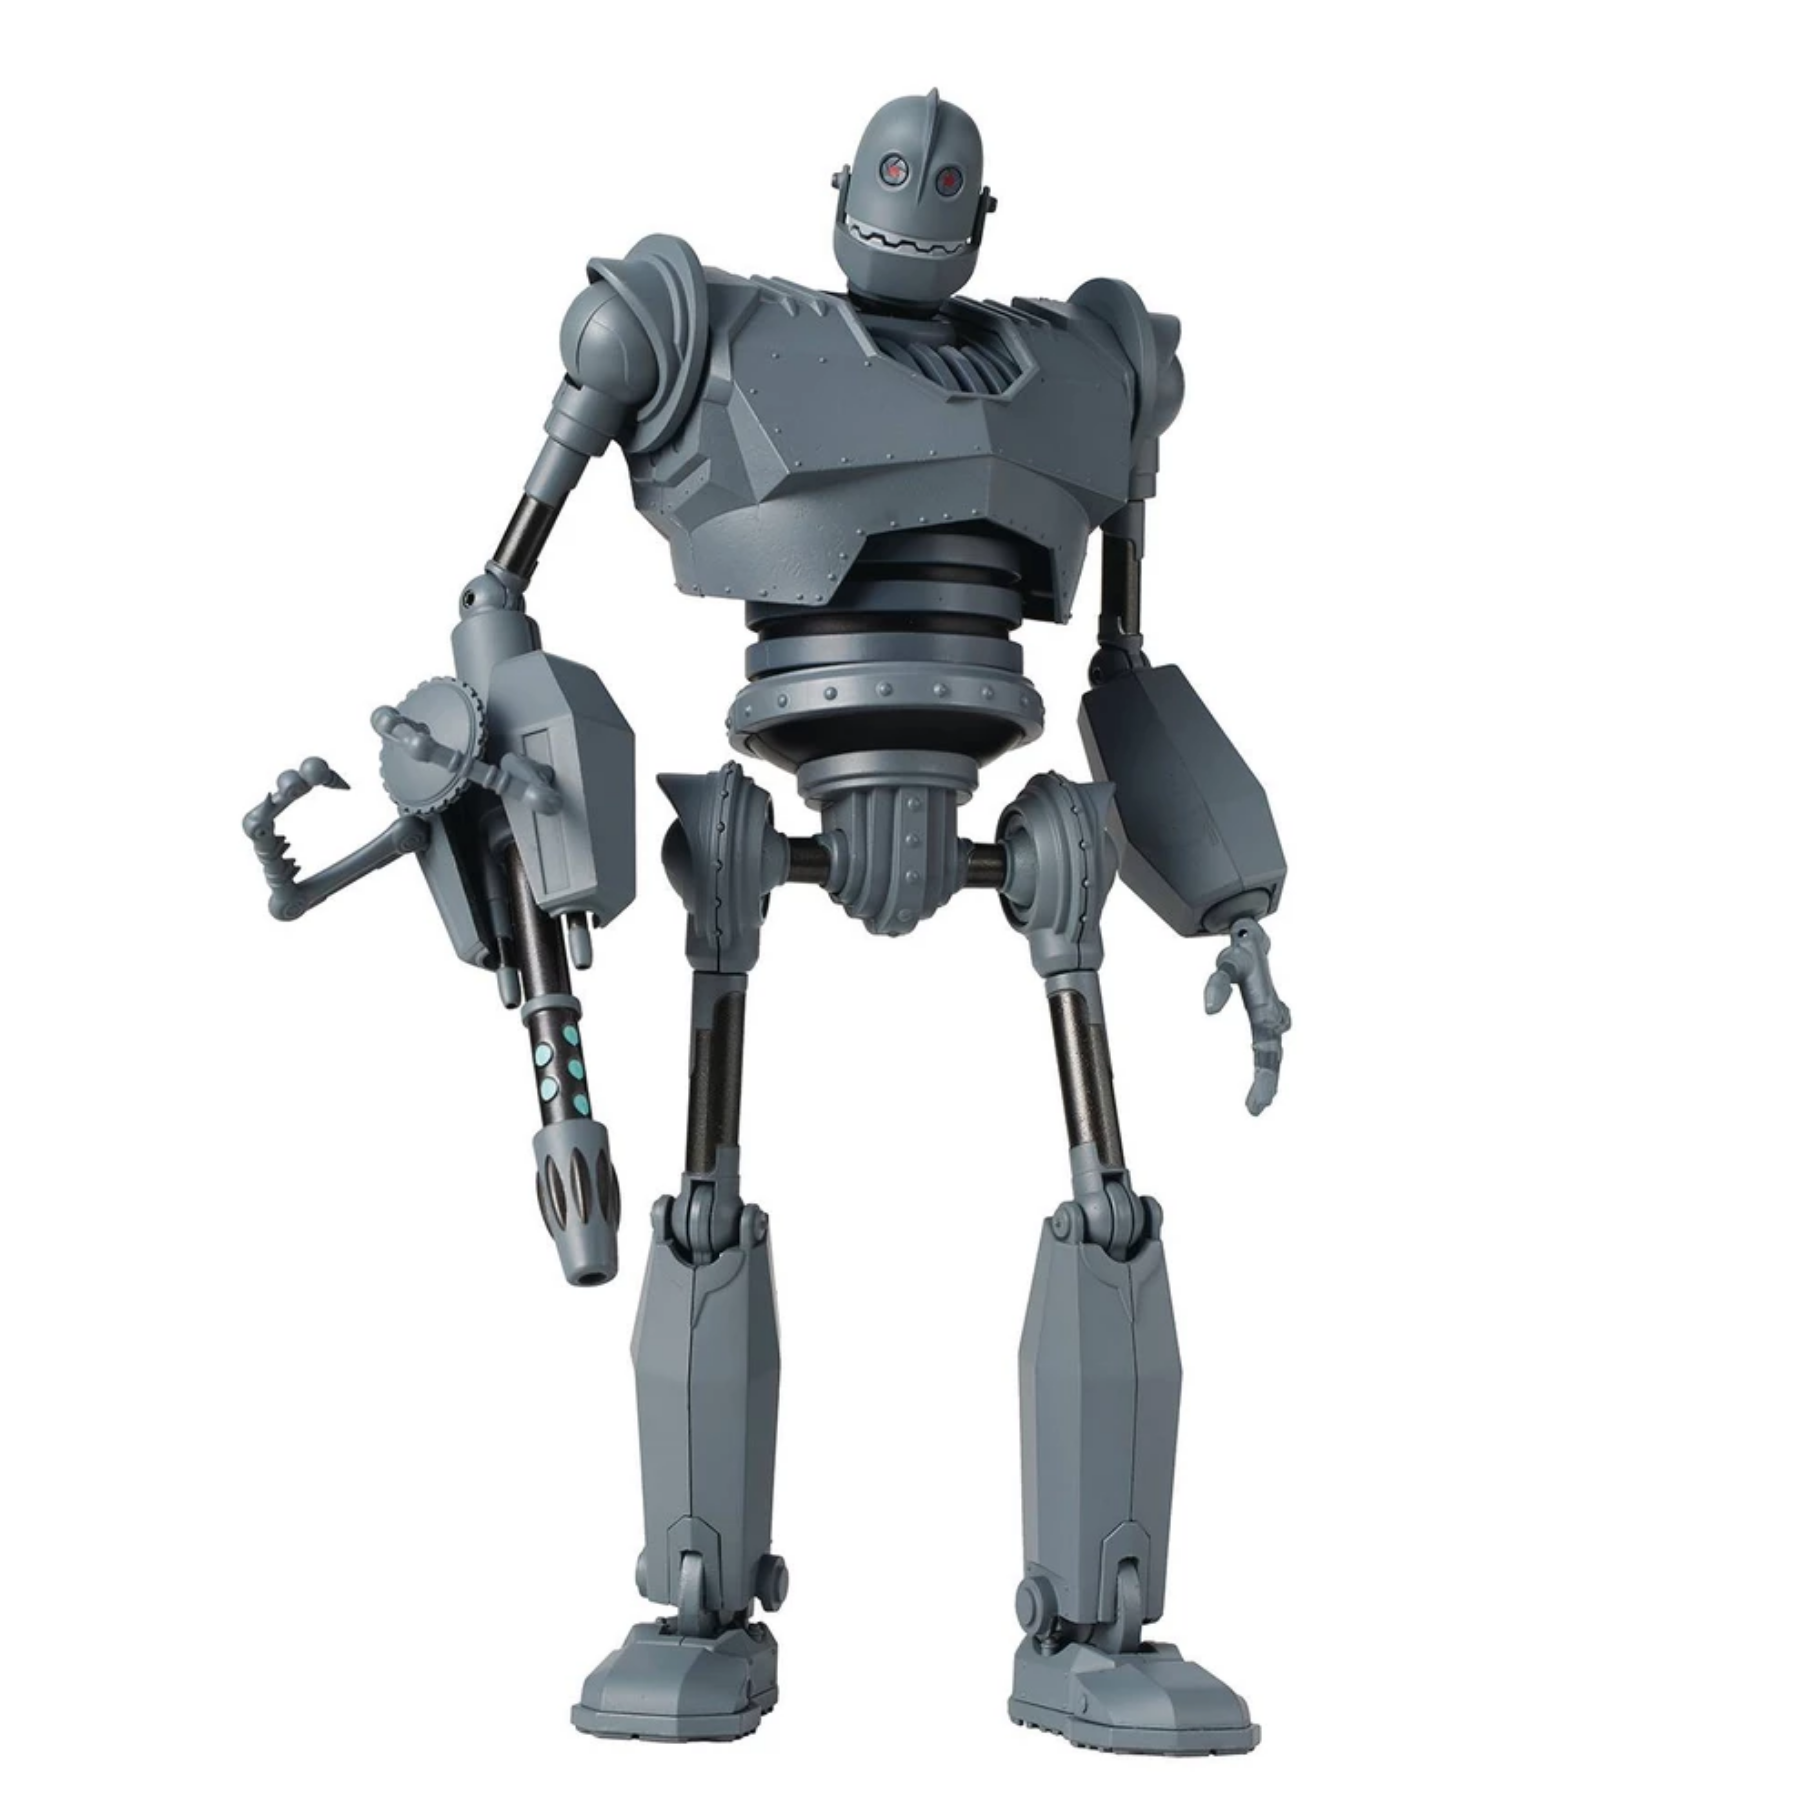 riobot iron giant battle mode die cast 160mm action figure by 1000toys action figures the iron giant cool toys